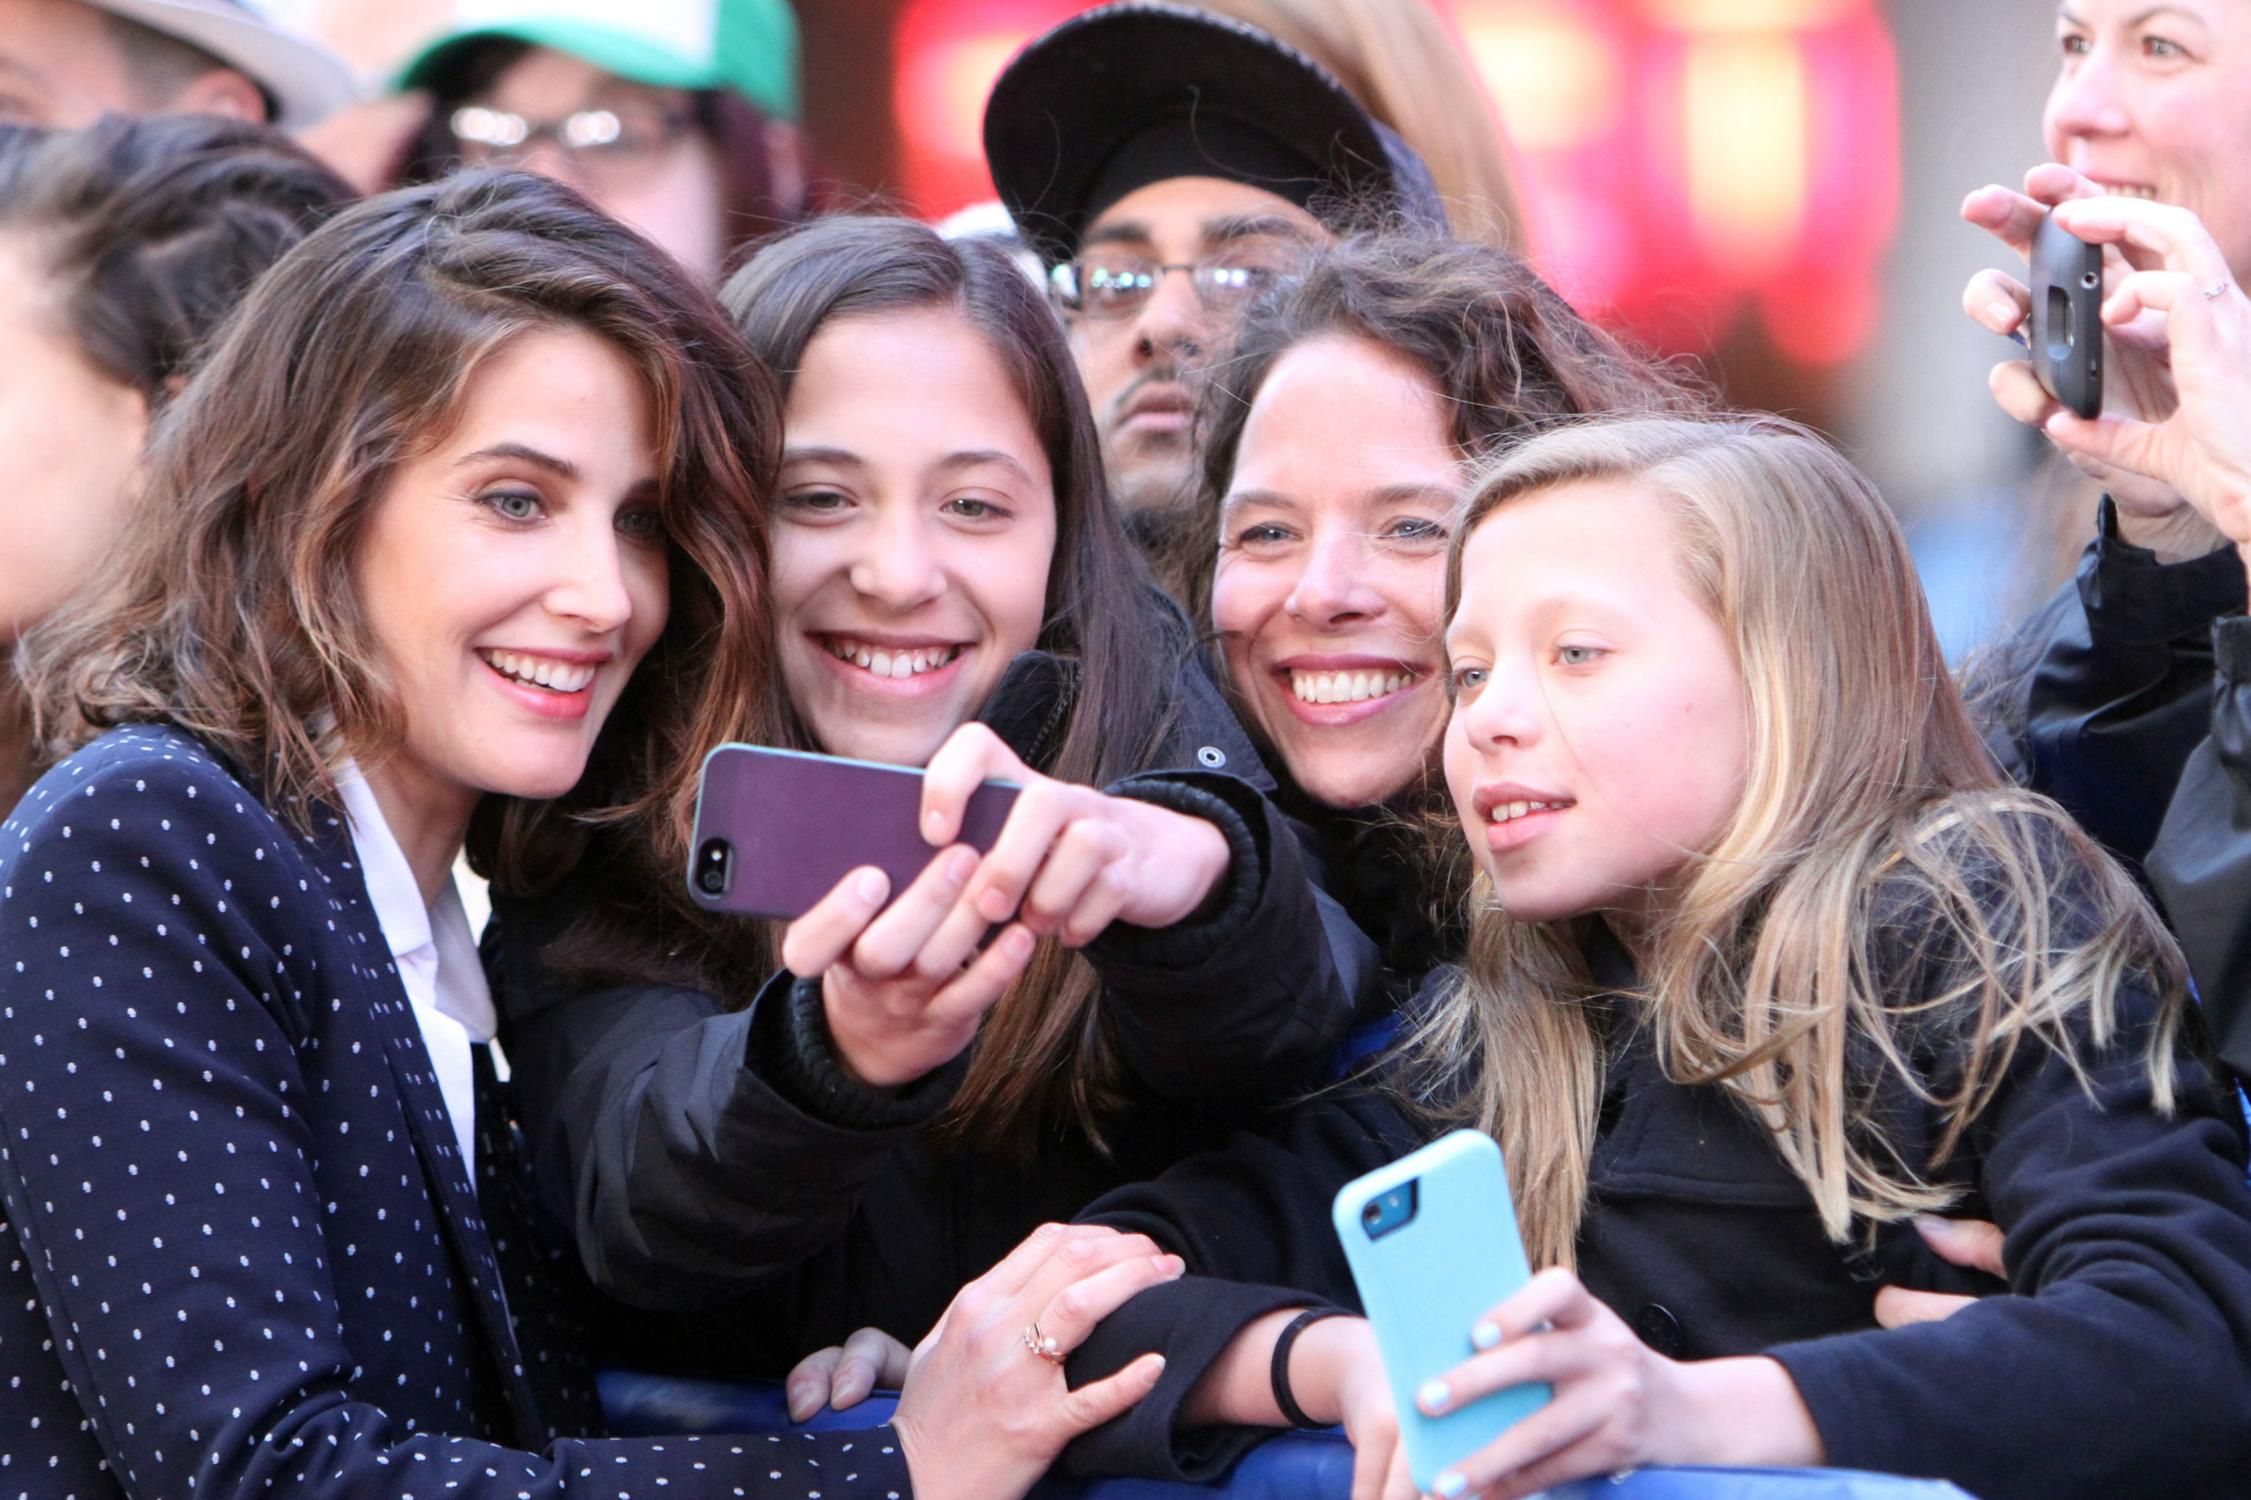 Cobie Smulders on ABCs Good Morning America-4